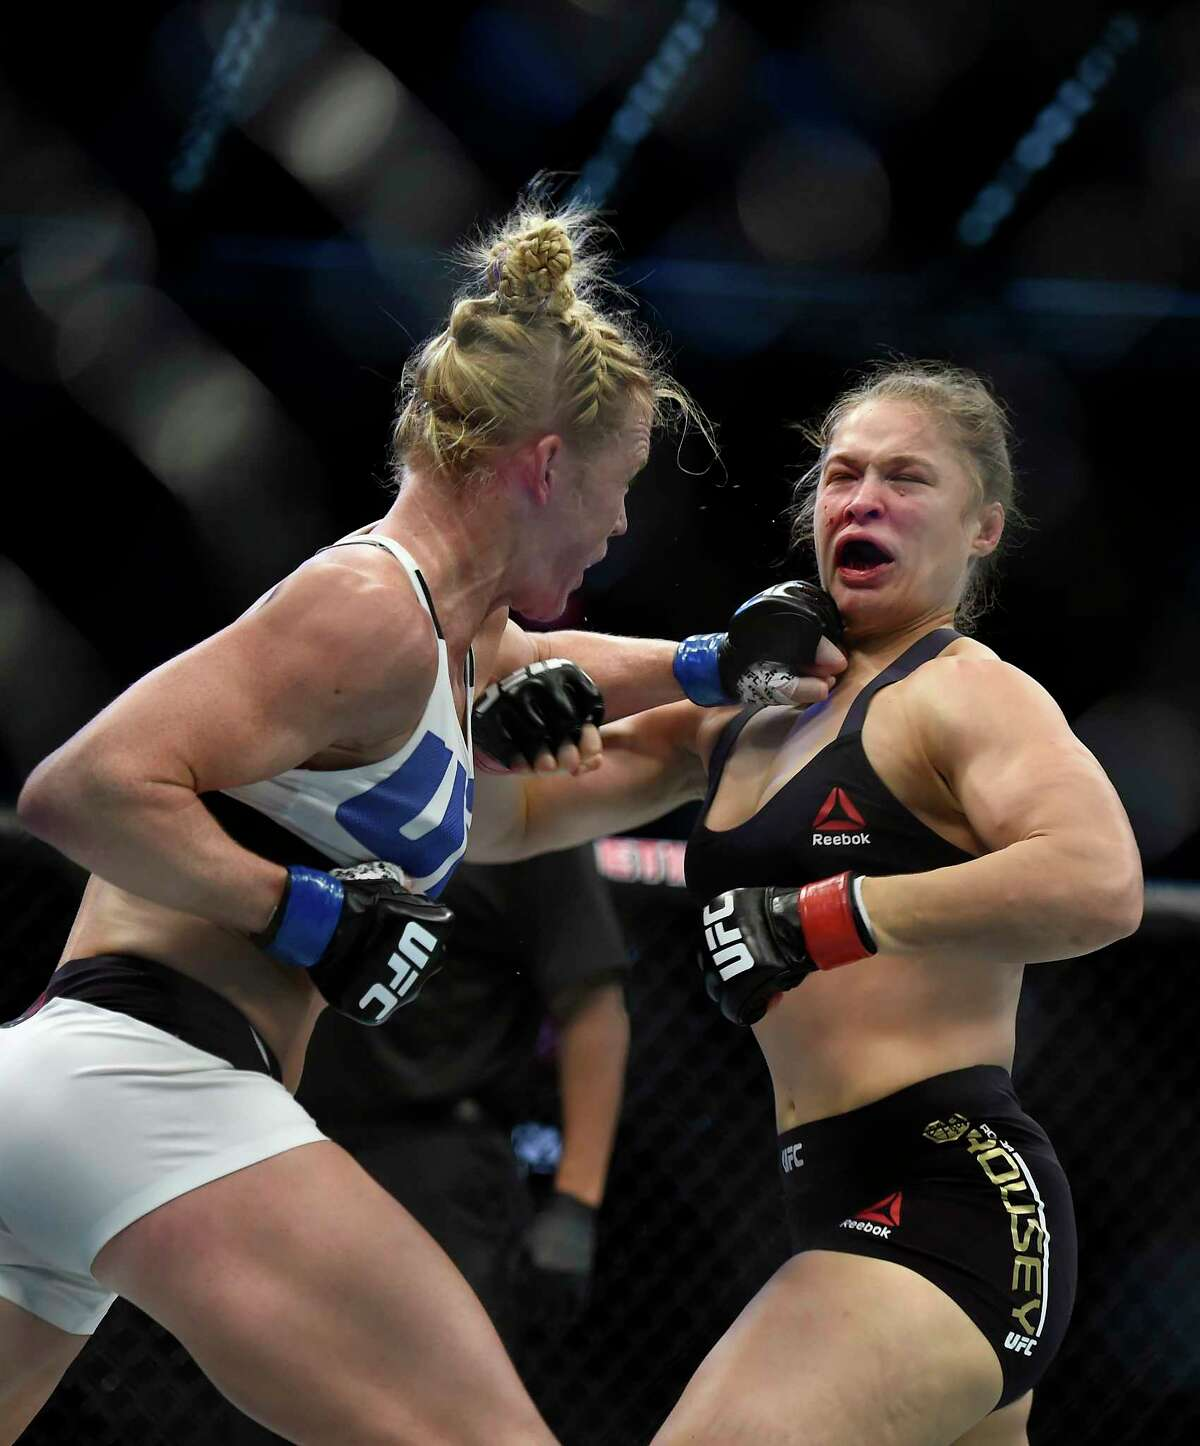 Holly Holm, left, punches Ronda Rousey during their UFC 193 bantamweight title fight in Melbourne, Australia.